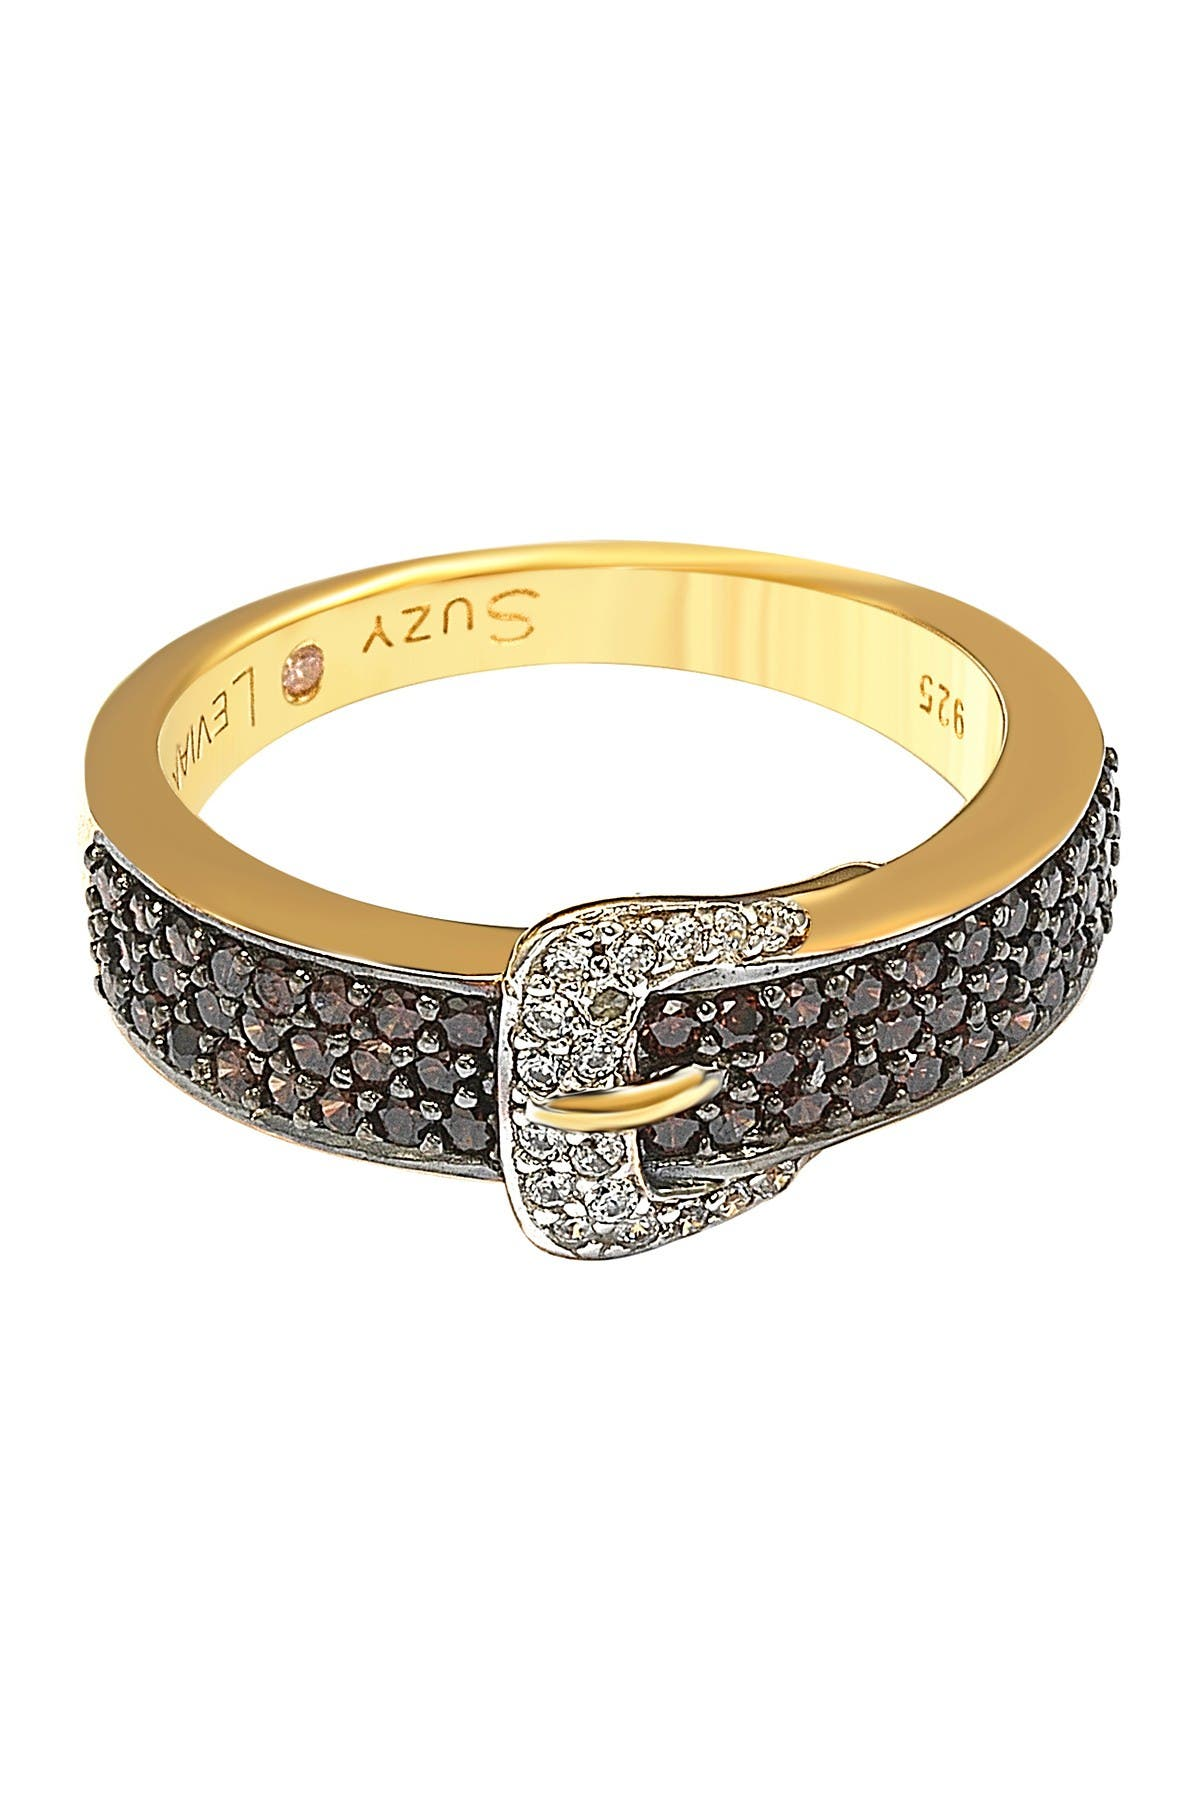 Image of Suzy Levian Gold-Tone Sterling Silver CZ Brown Buckle Ring